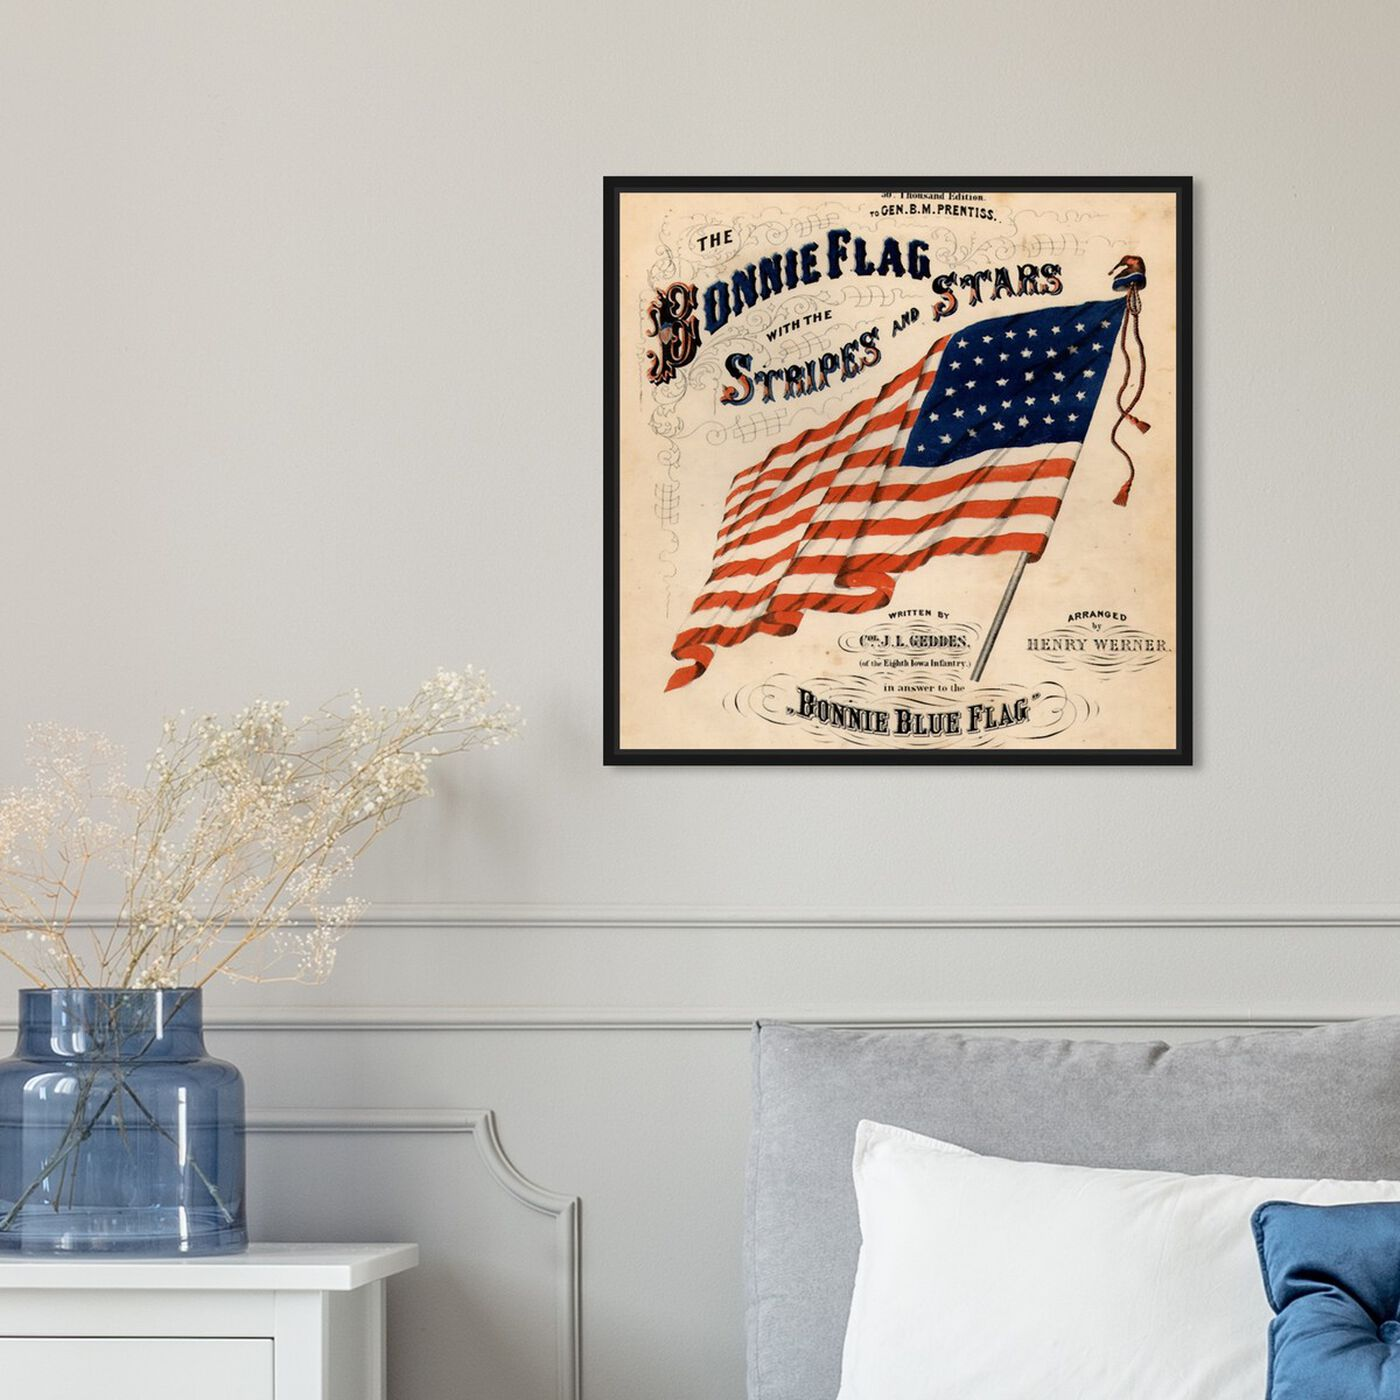 Hanging view of Bonnie Flag featuring americana and patriotic and us flags art.